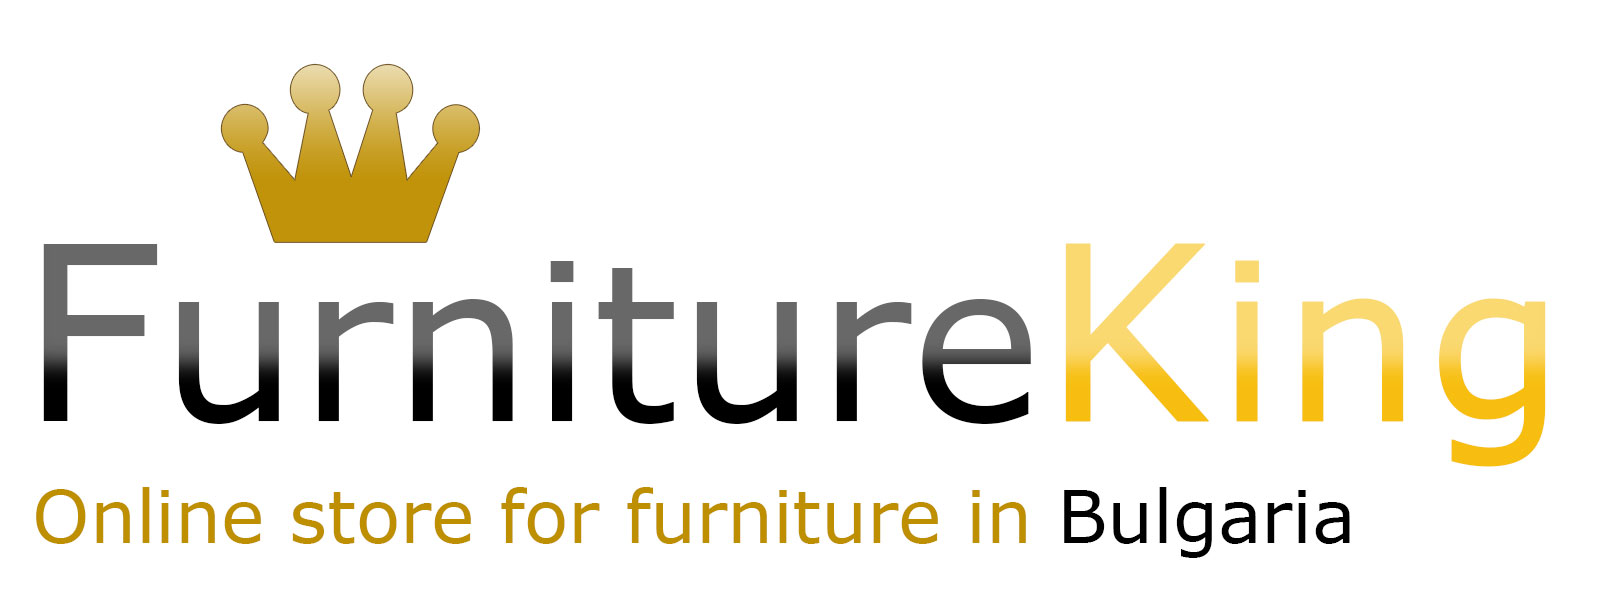 FurnitureKing